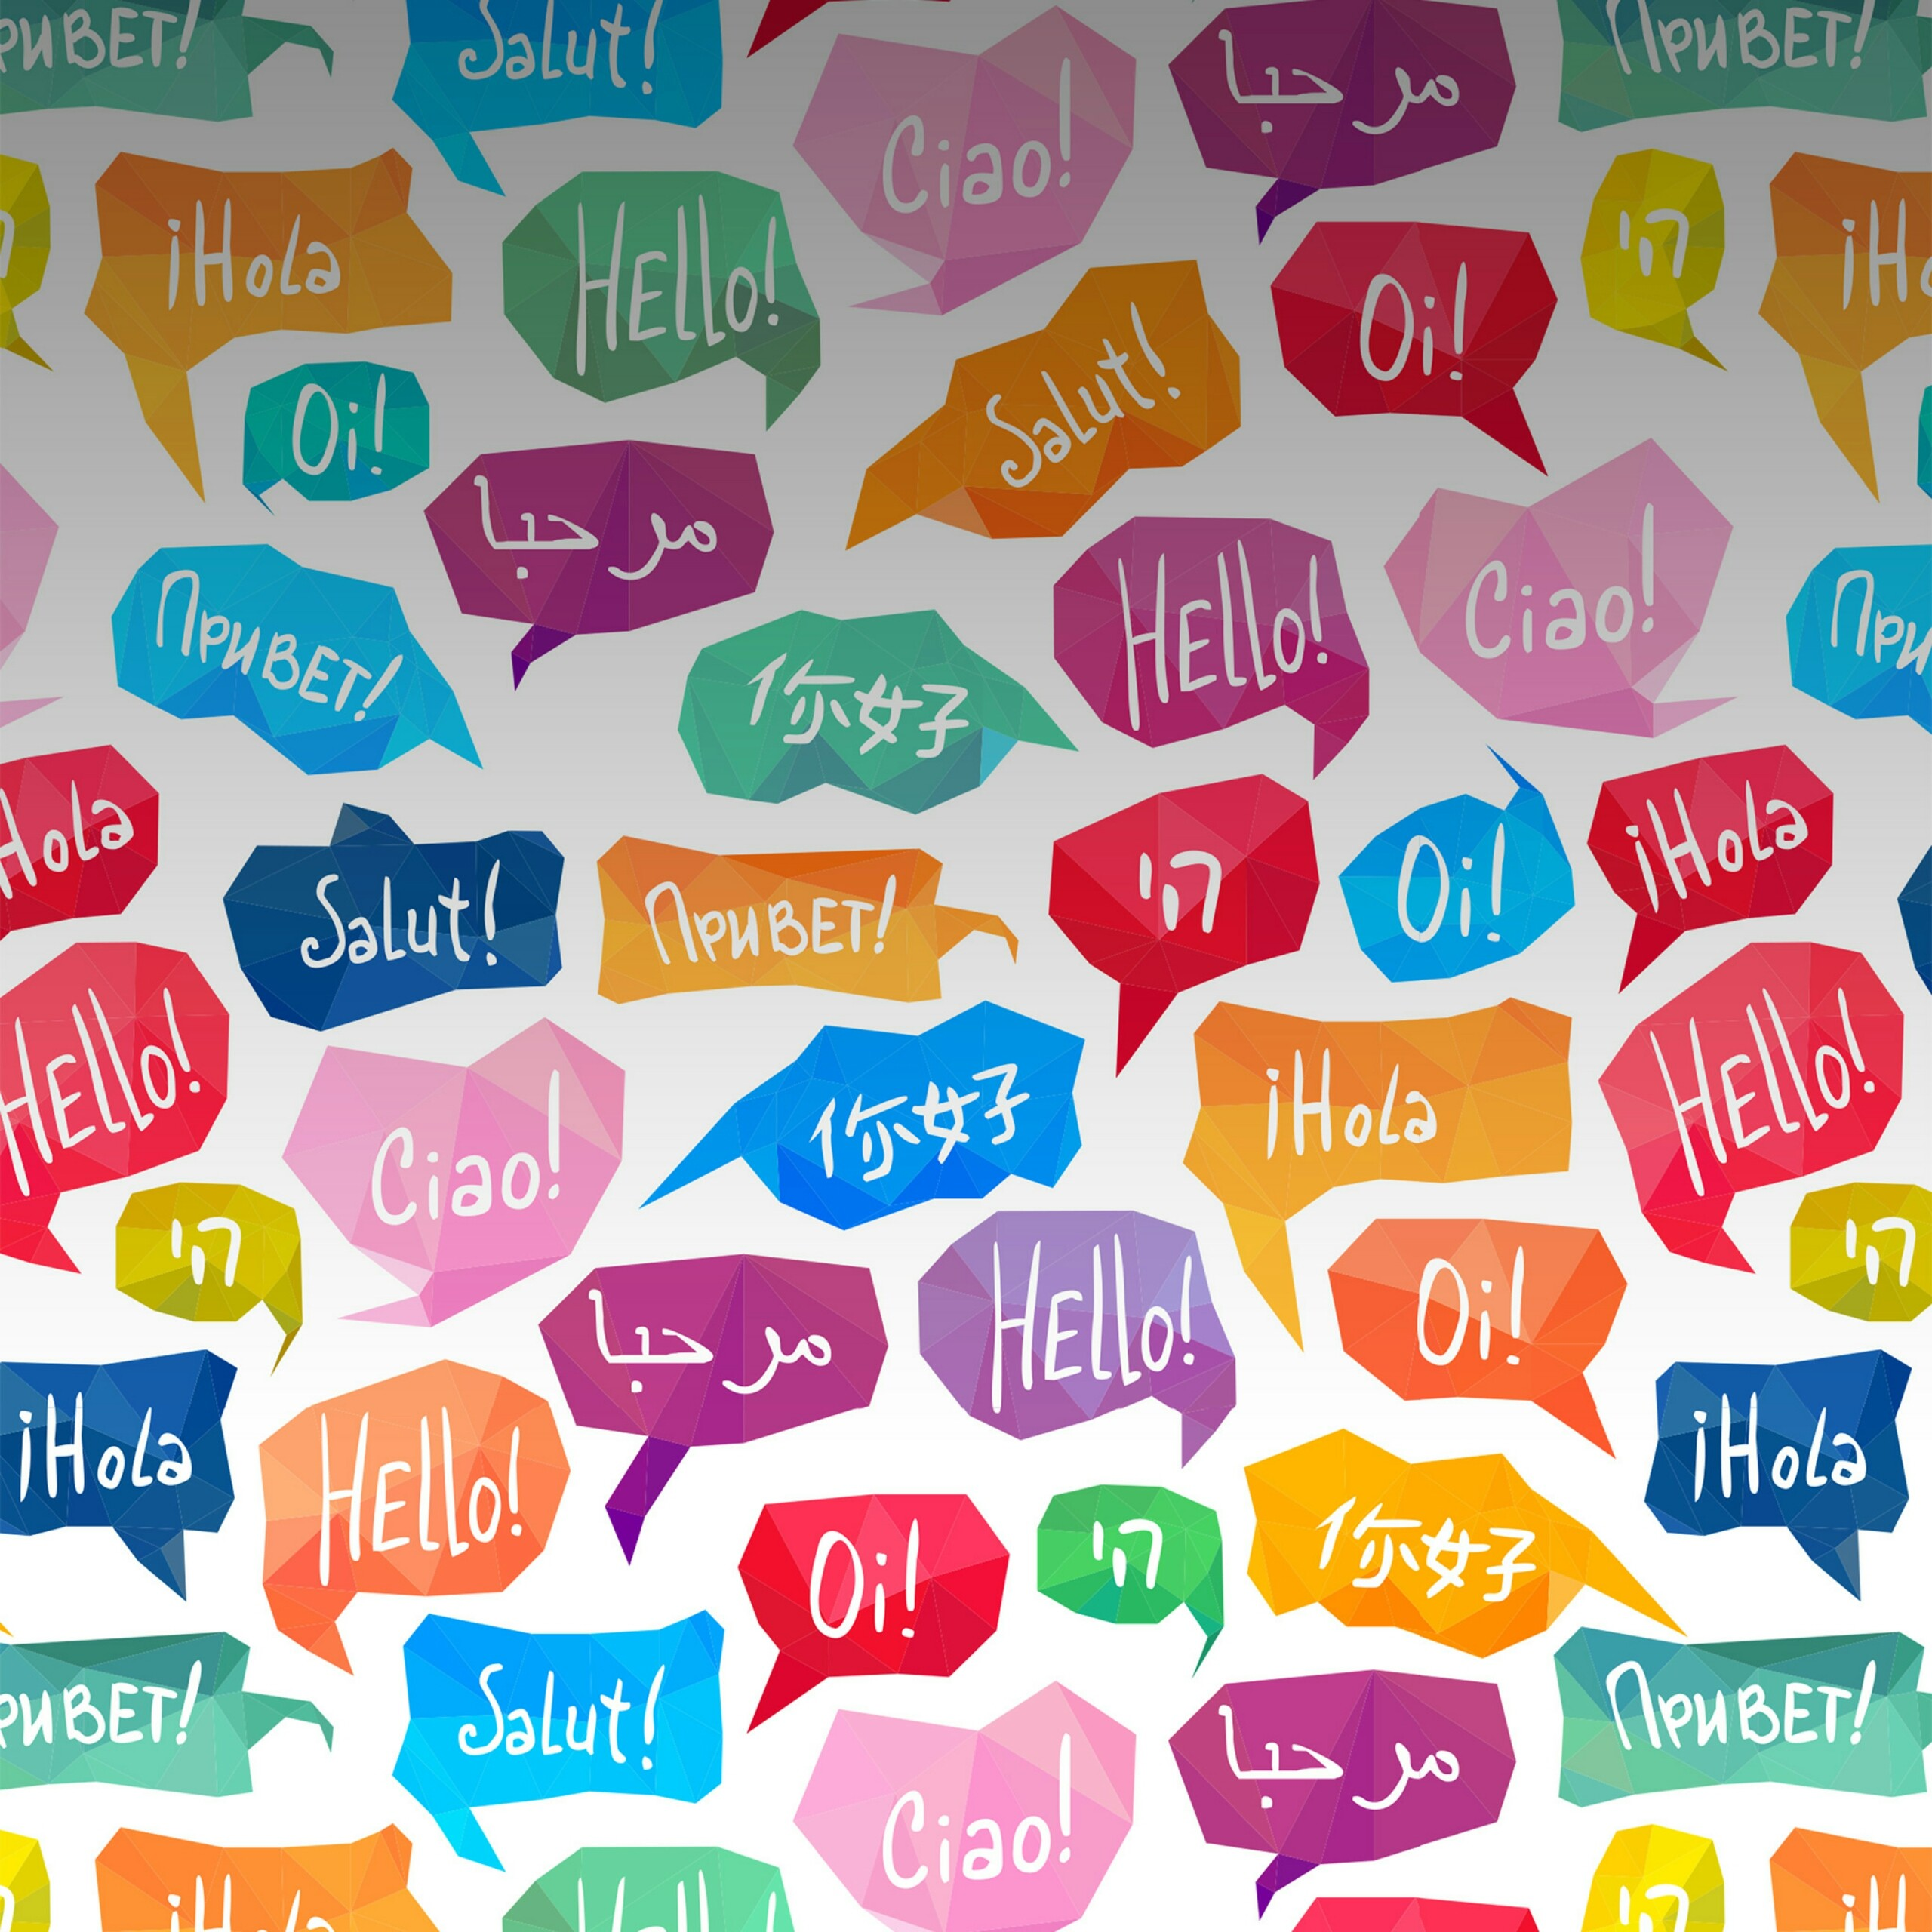 saying-hello-in-different-languages-qhd-wallpaper-2560x2560.jpg